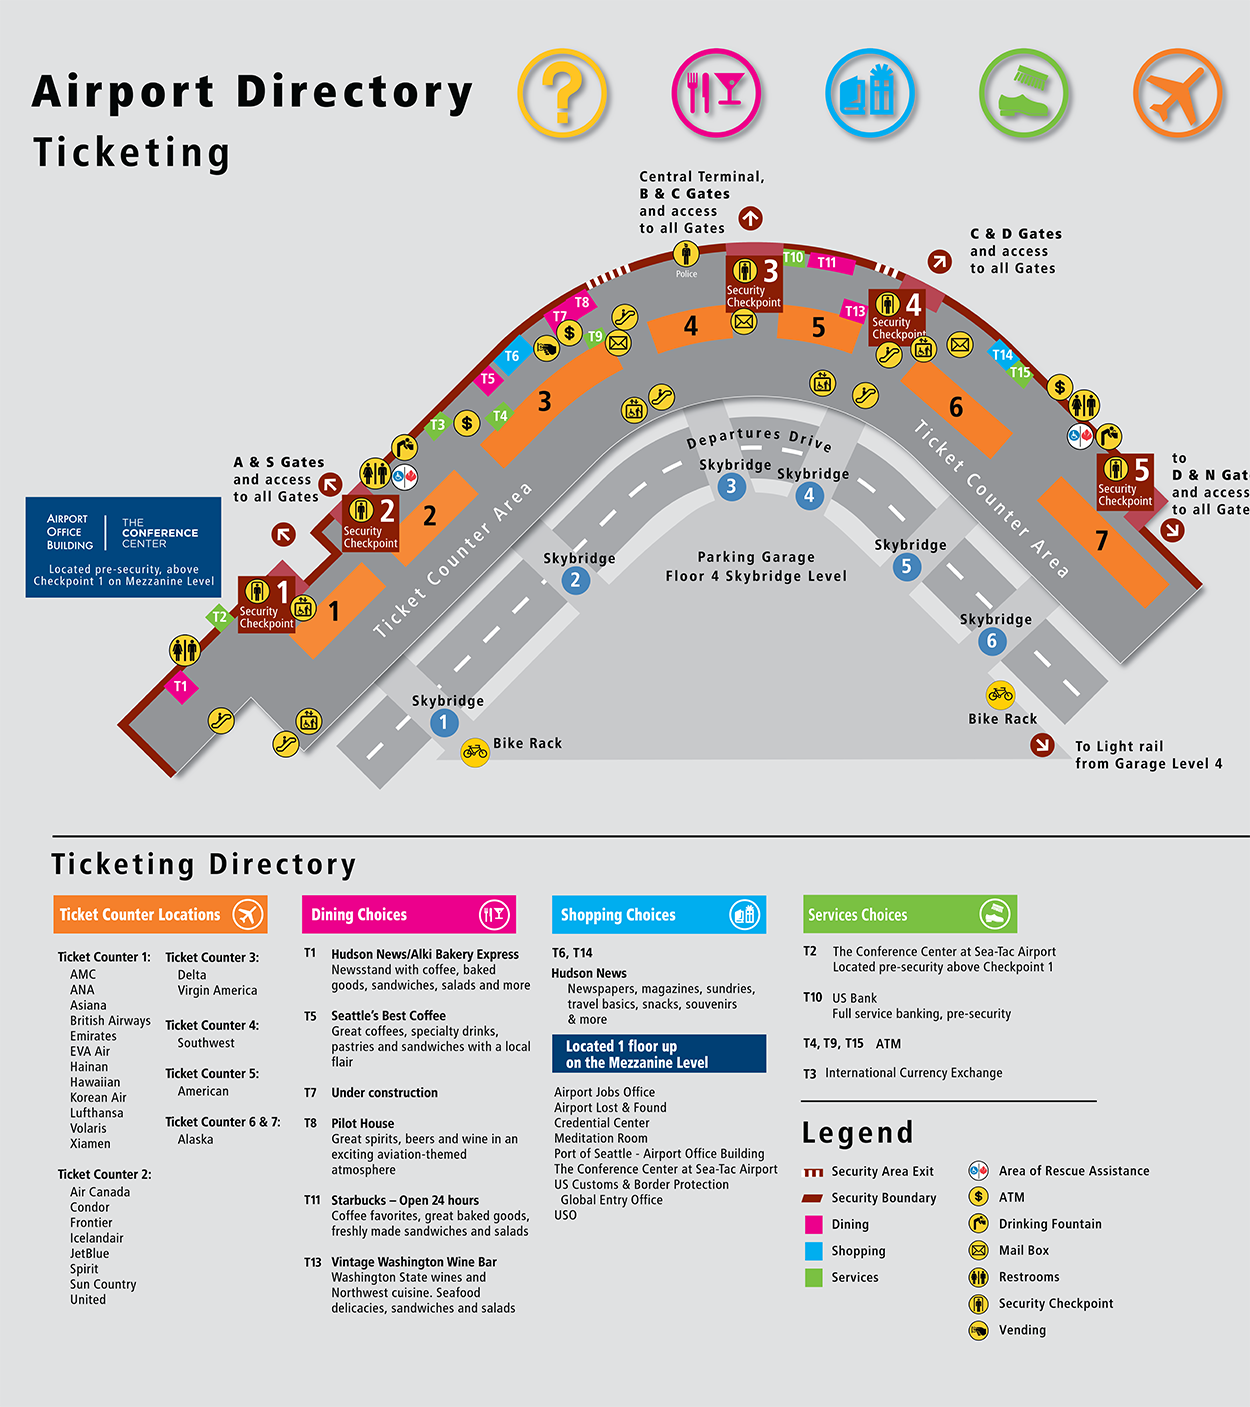 seatac airport arrivals map Harmony 2017 Travel Information Combine seatac airport arrivals map